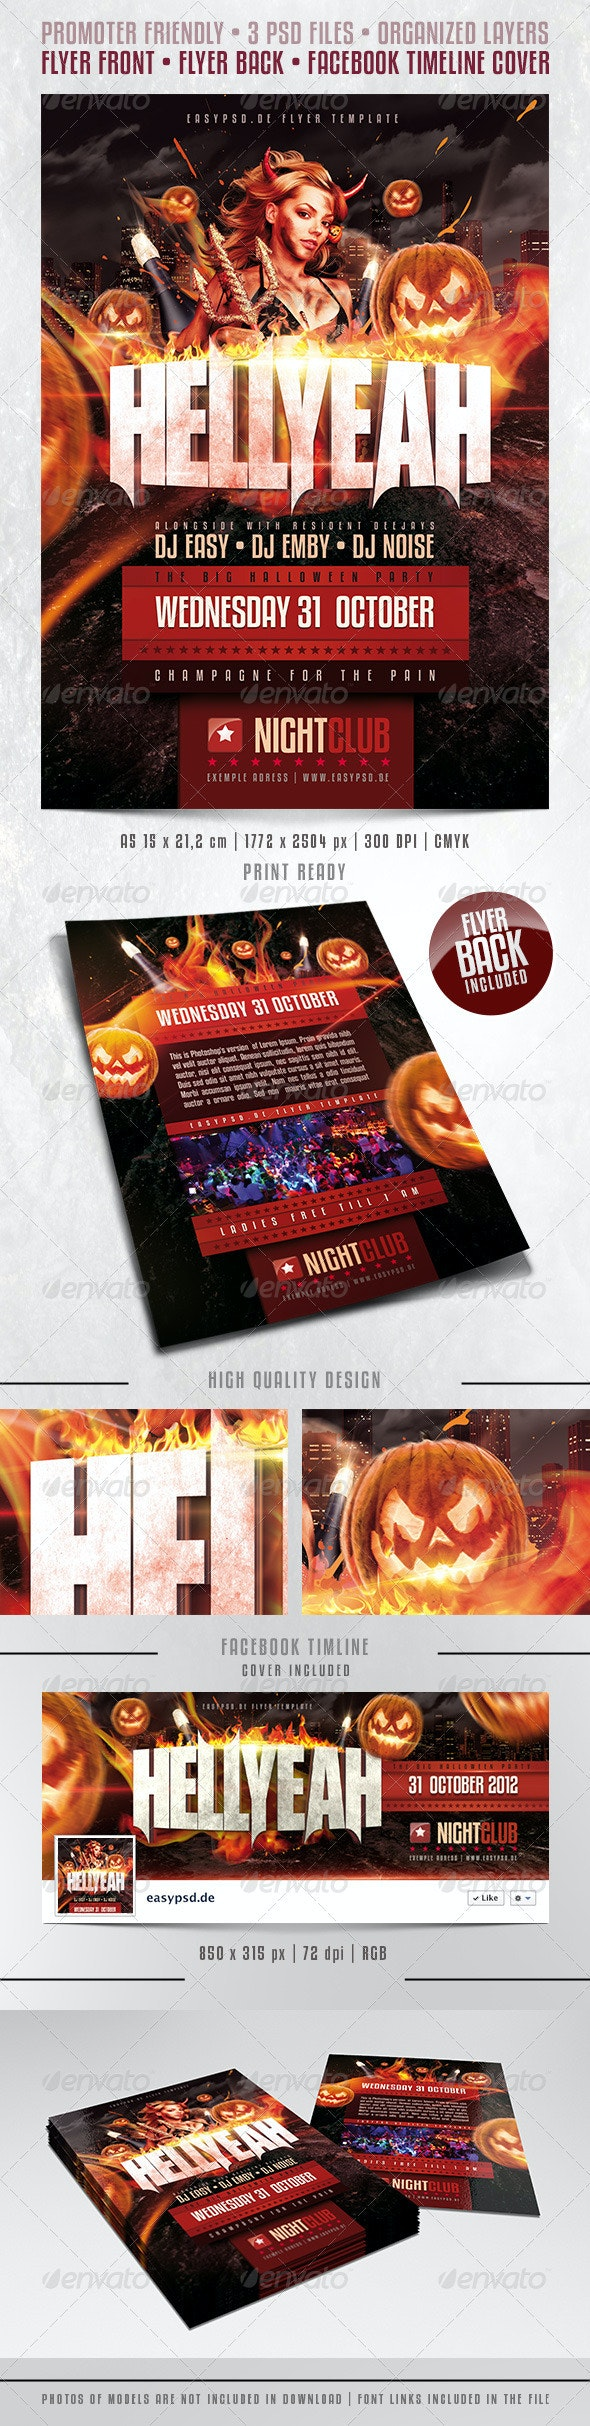 HELLYEAH Flyer Template - Clubs & Parties Events